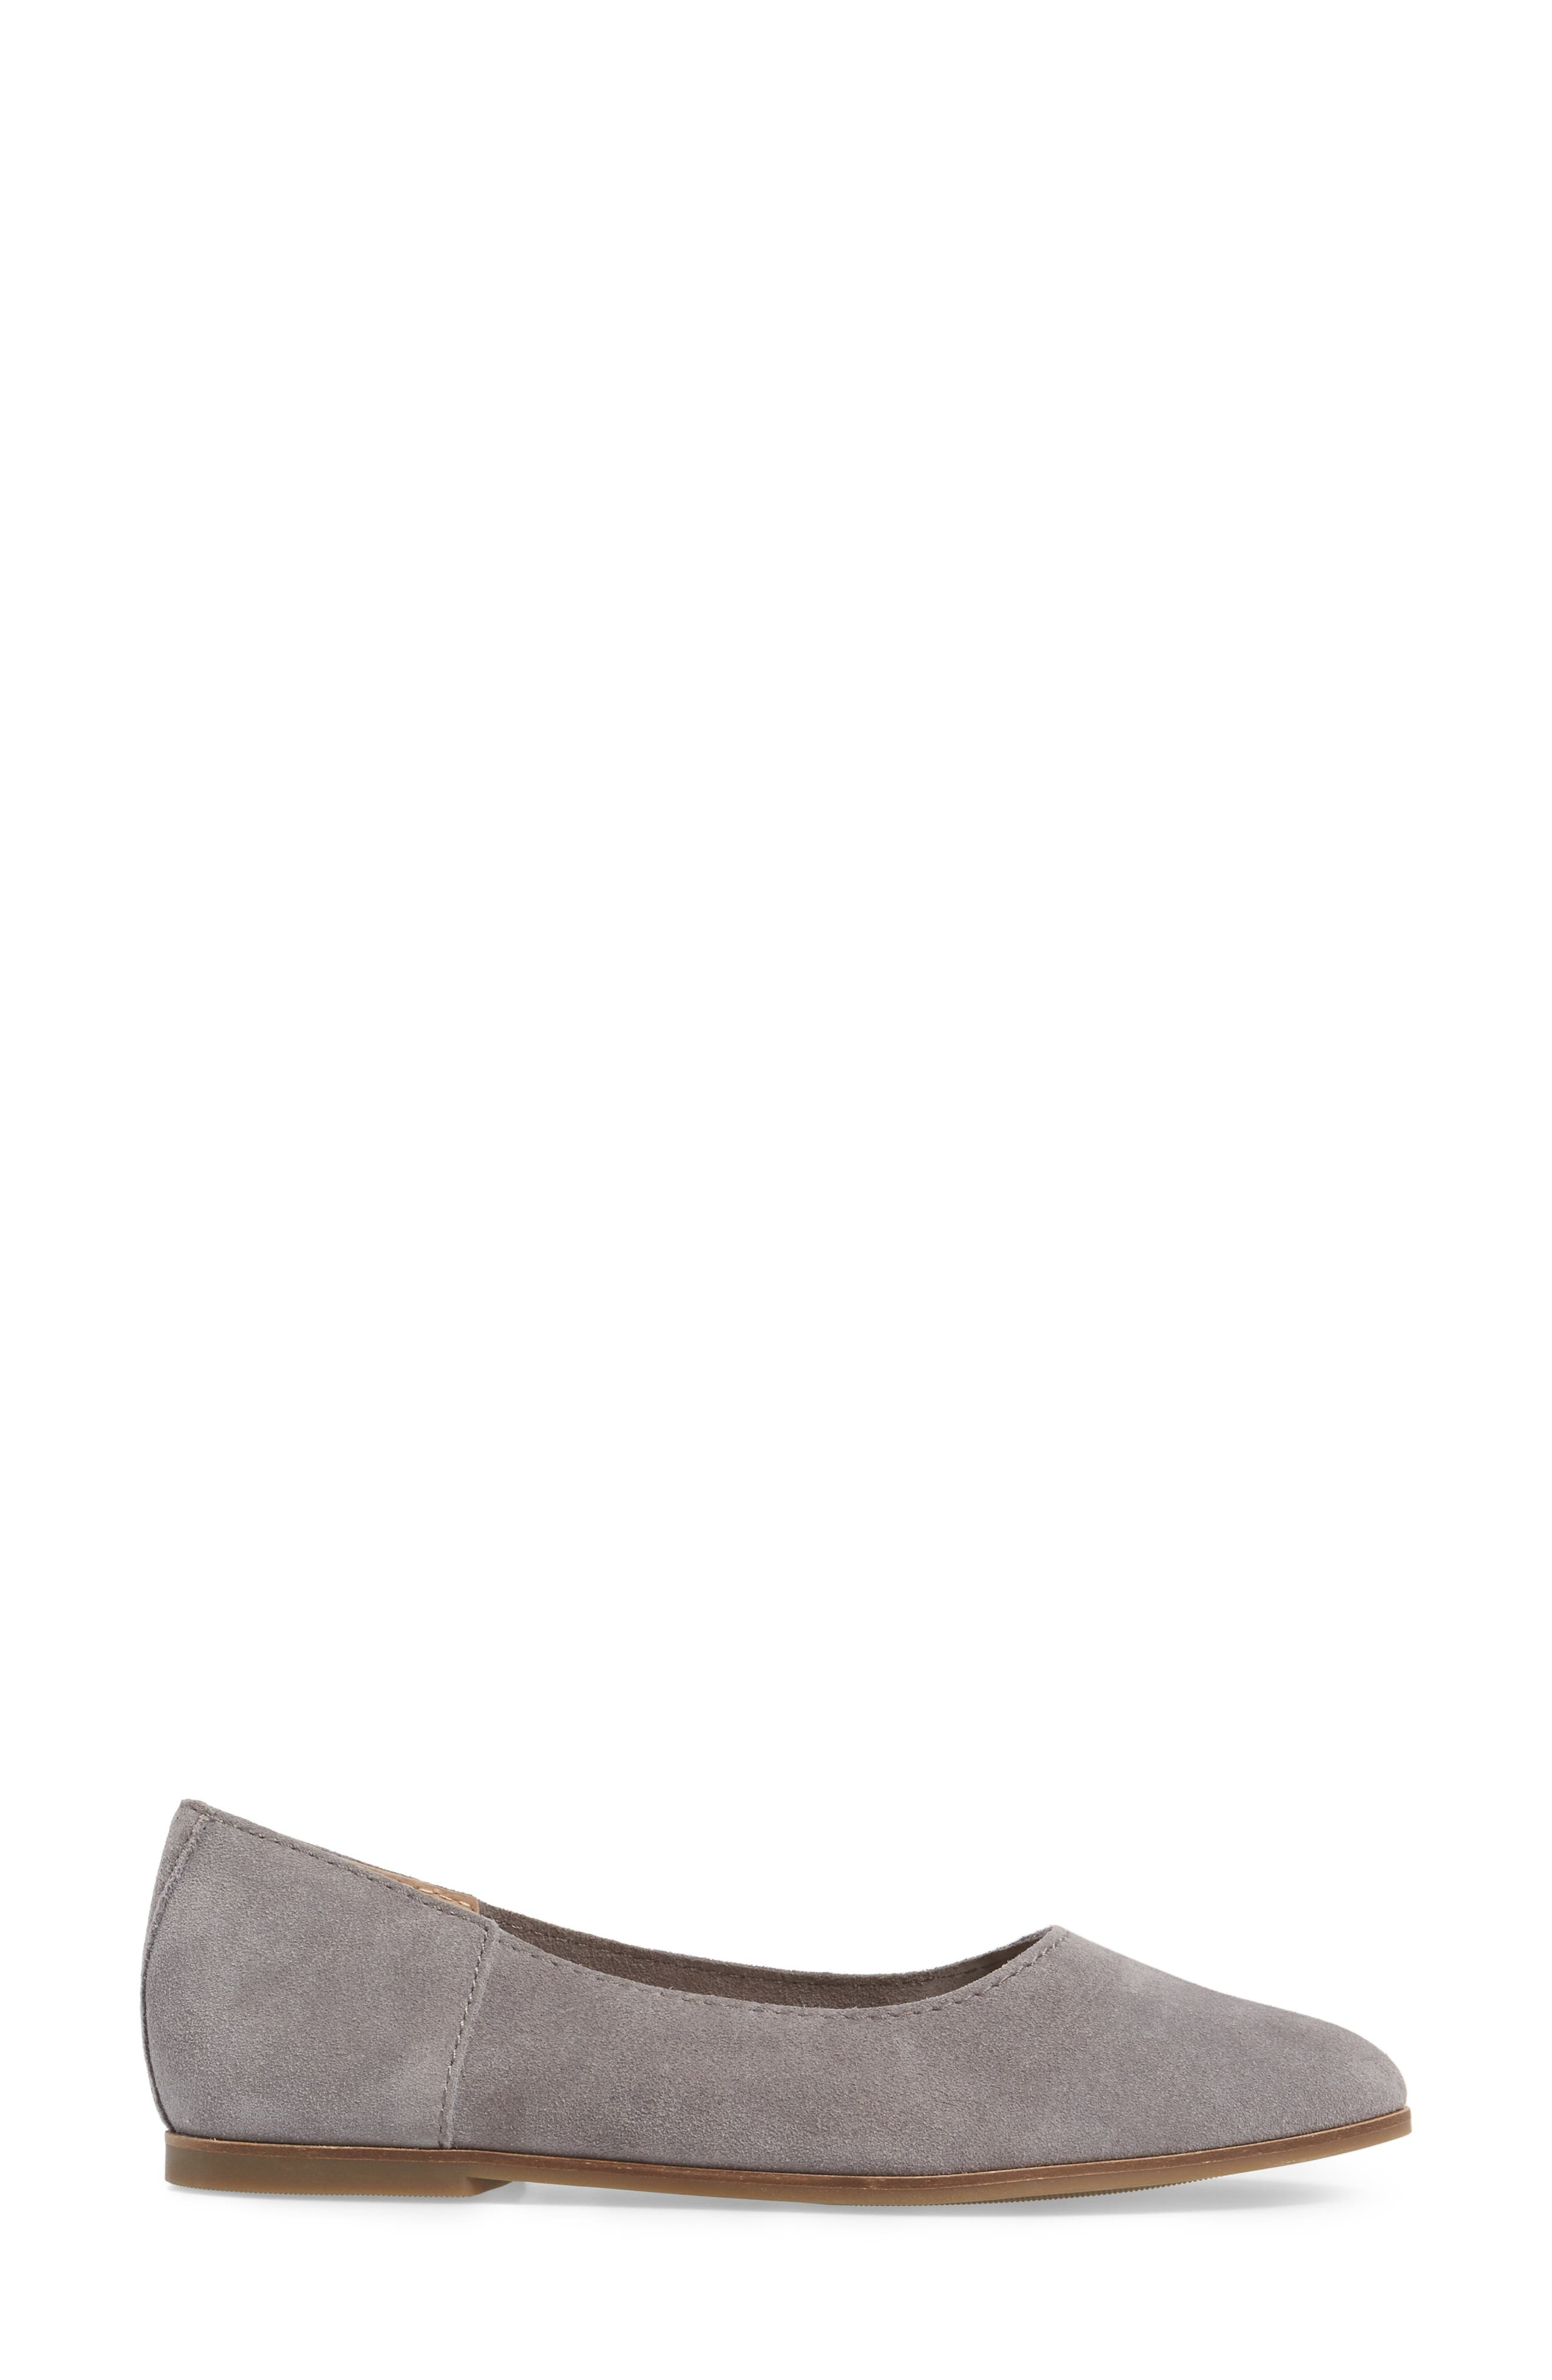 Calandra Flat,                             Alternate thumbnail 3, color,                             Steel Grey Suede